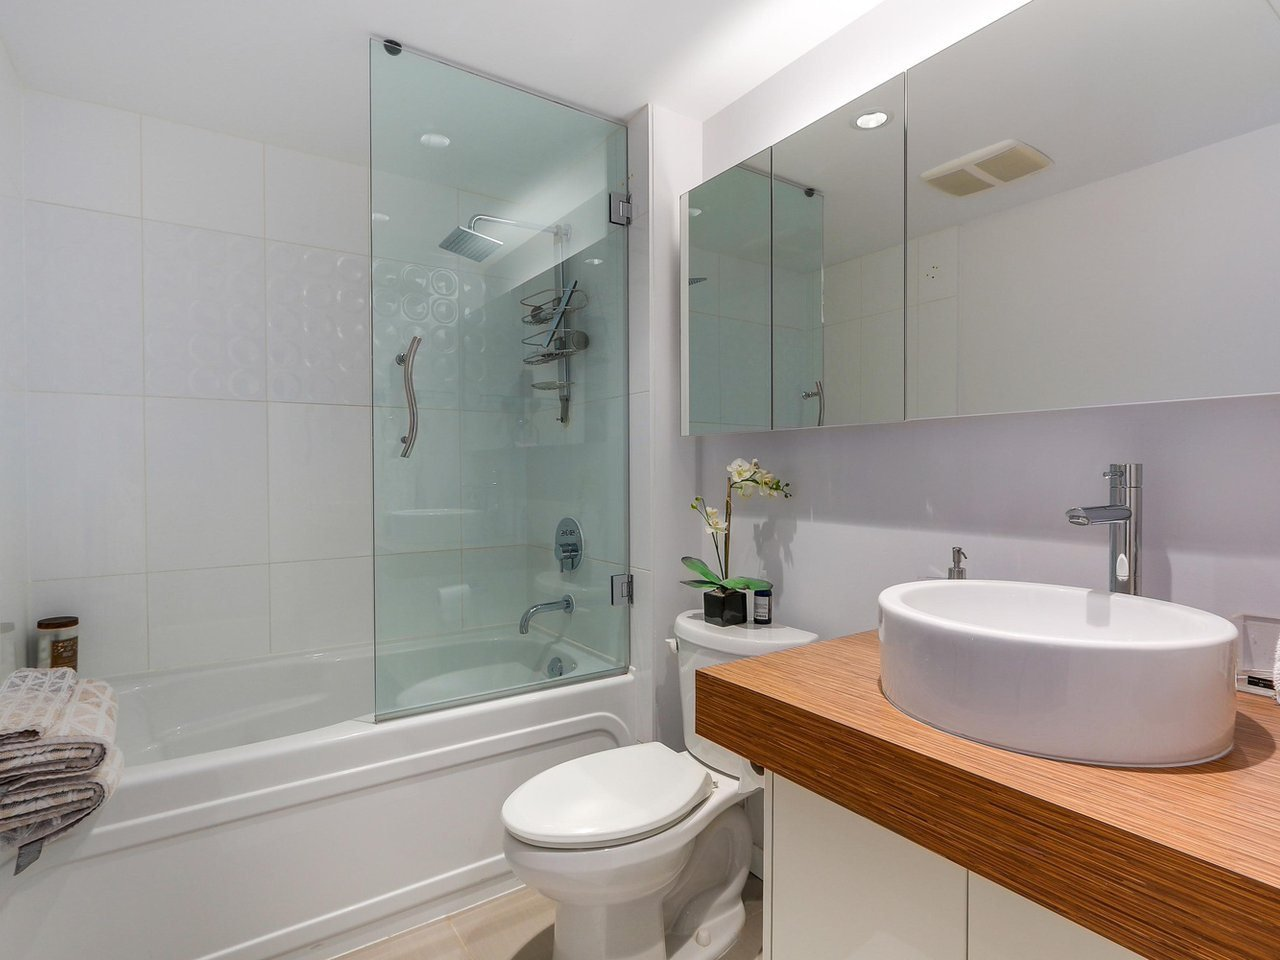 Photo 12: Photos: 217 168 POWELL Street in Vancouver: Downtown VE Condo for sale (Vancouver East)  : MLS®# R2386644